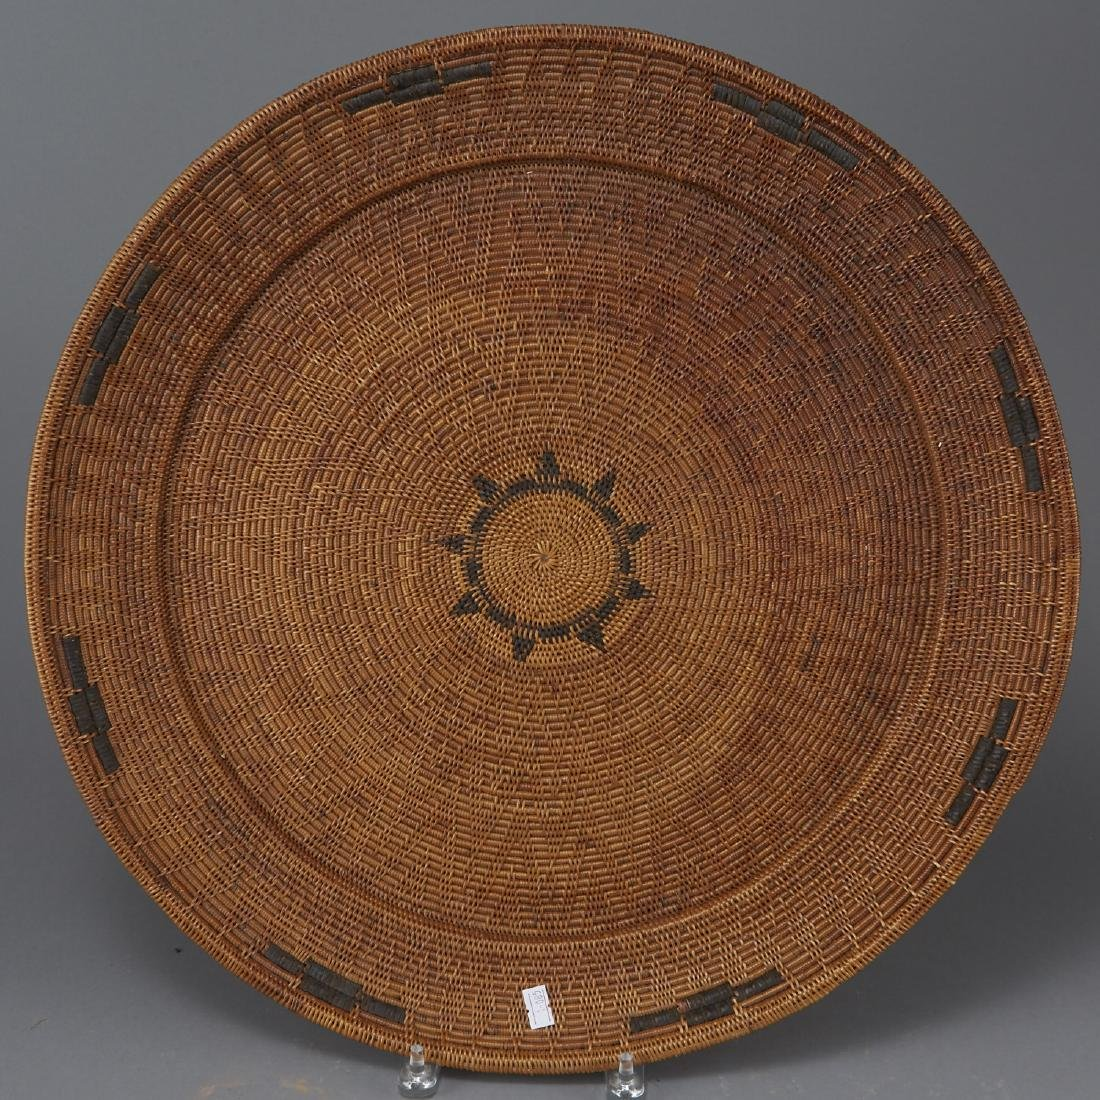 Group of 5 Pima Woven Baskets and Trays - 3